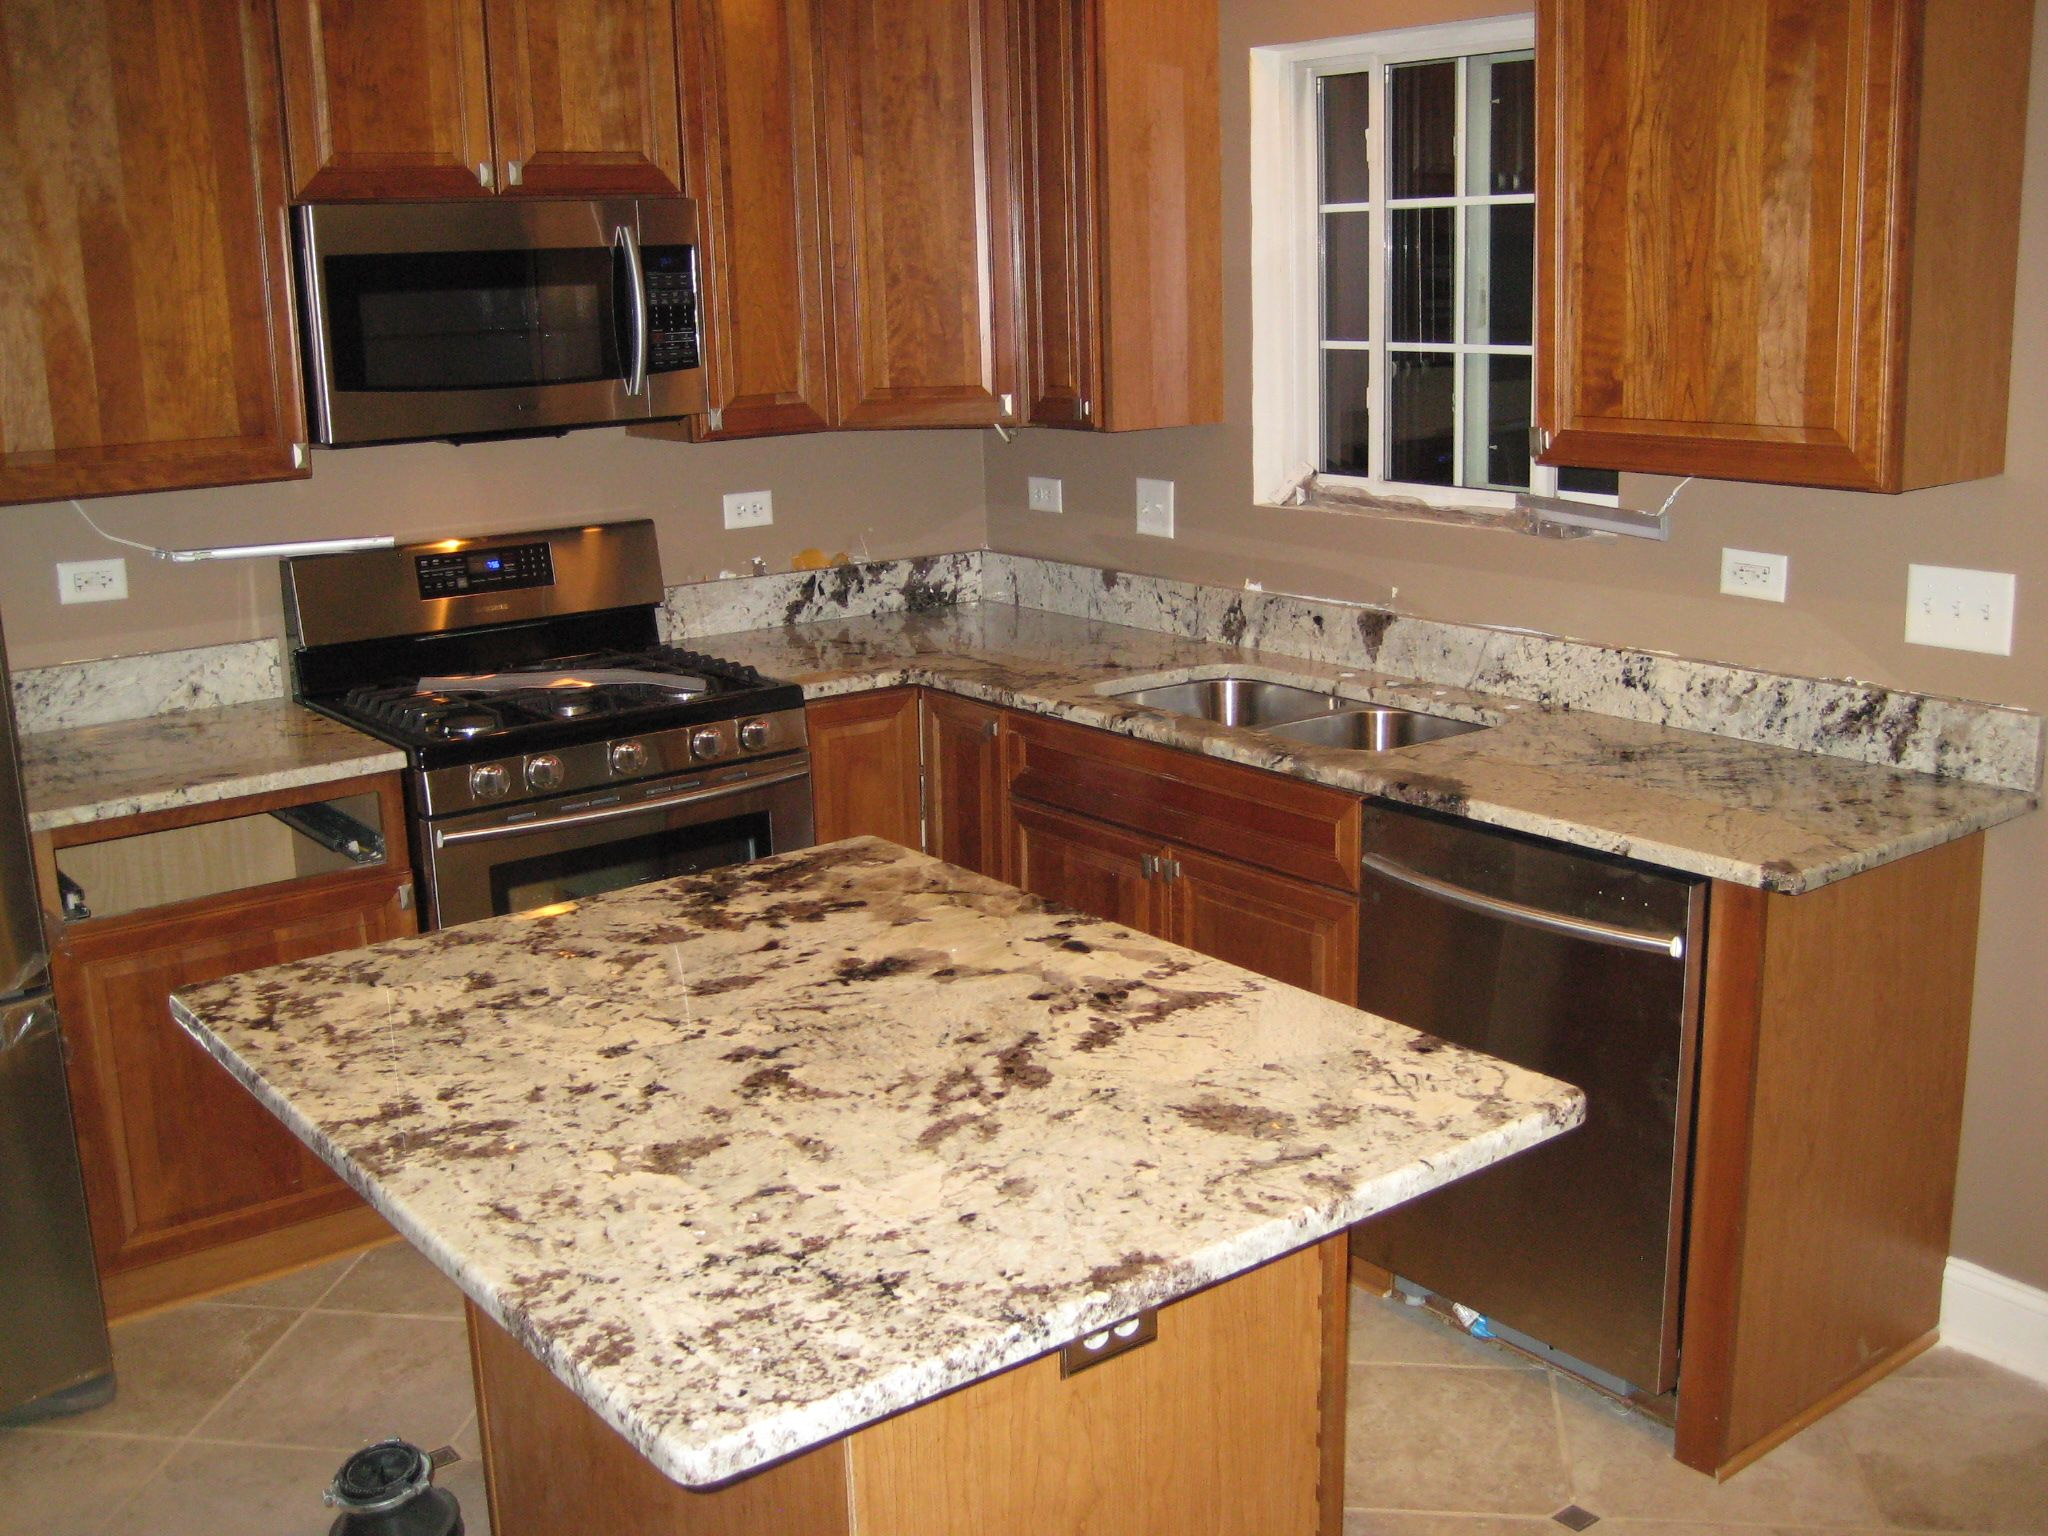 Granite Alaskan White Copuntertops BY Art Granite Countertops Inc. Free In  Home Measurement Of Your Kitchen Countertops And Free Quote .